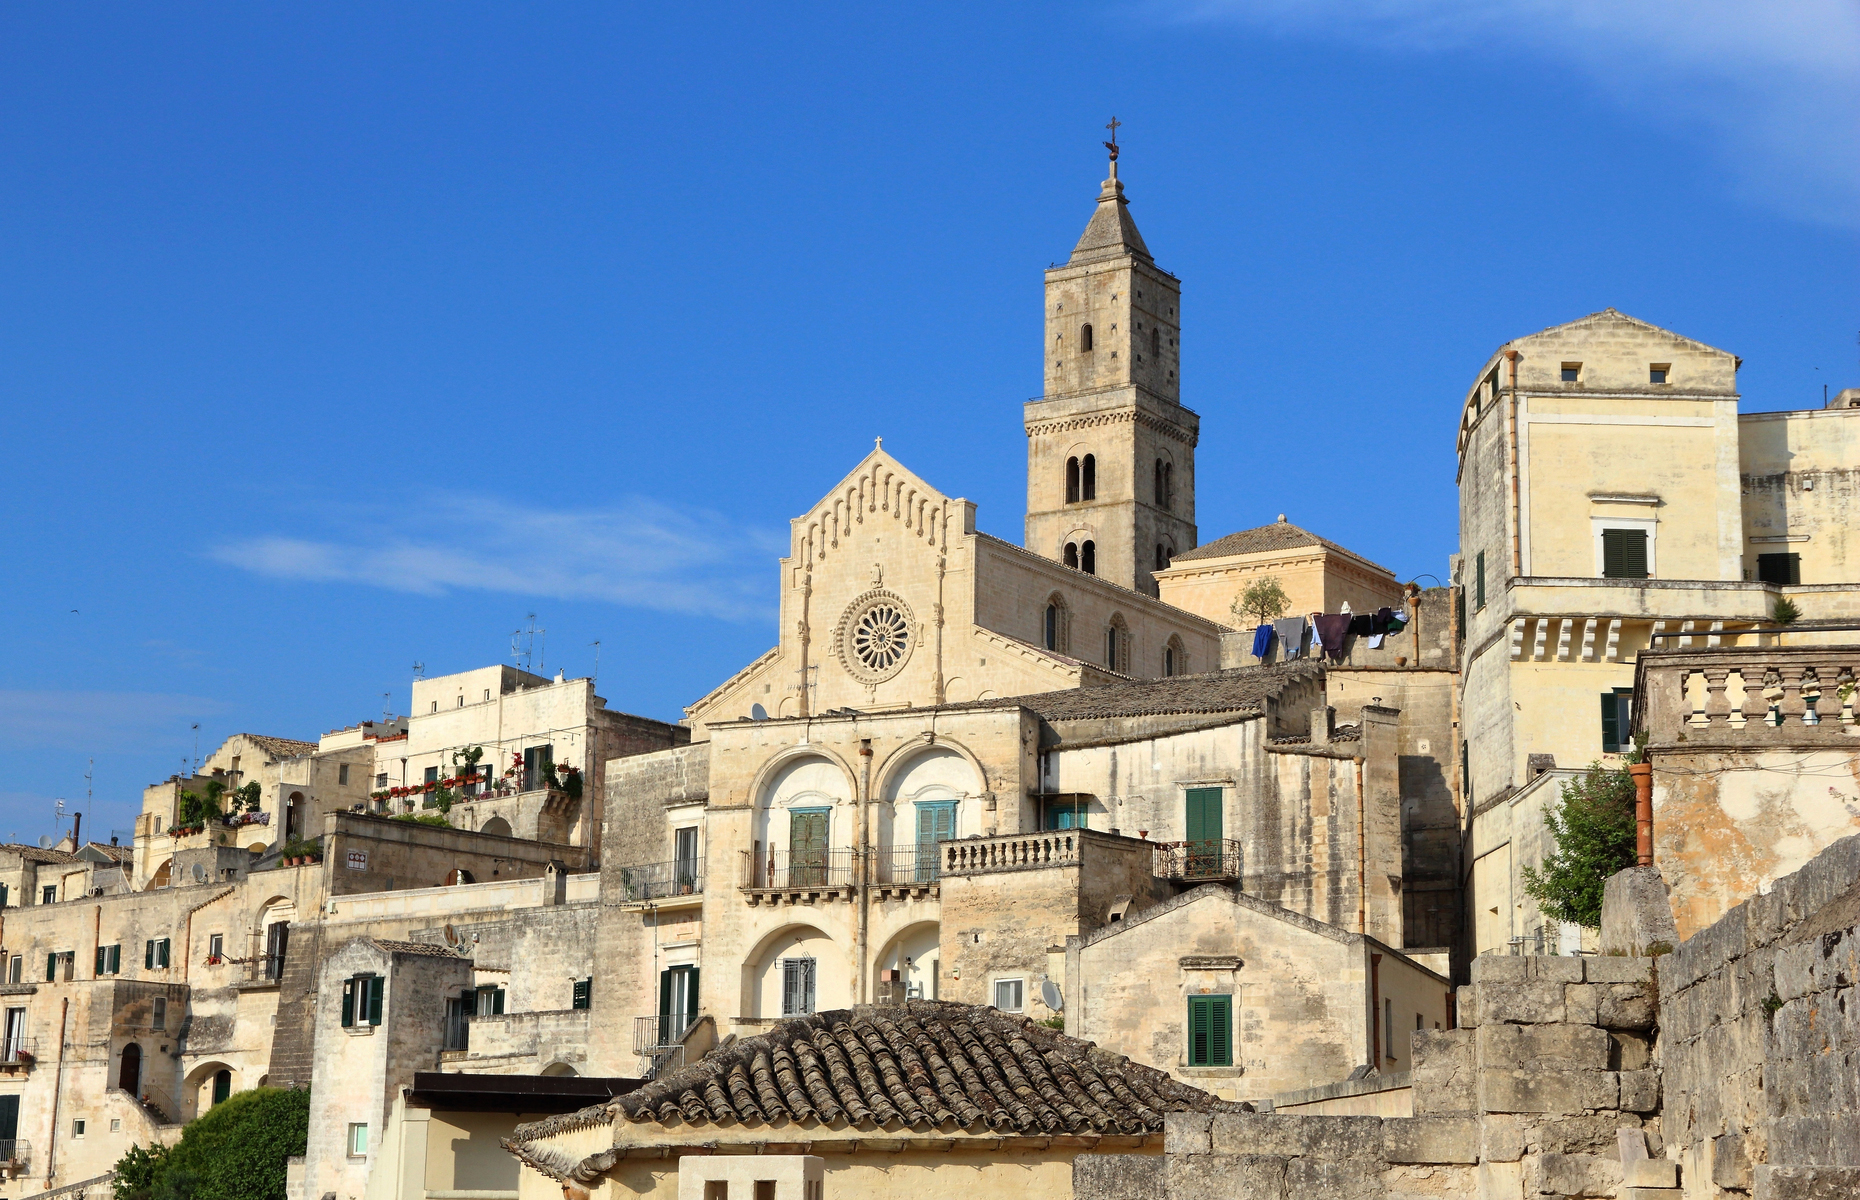 UNESCO listed centre of Matera